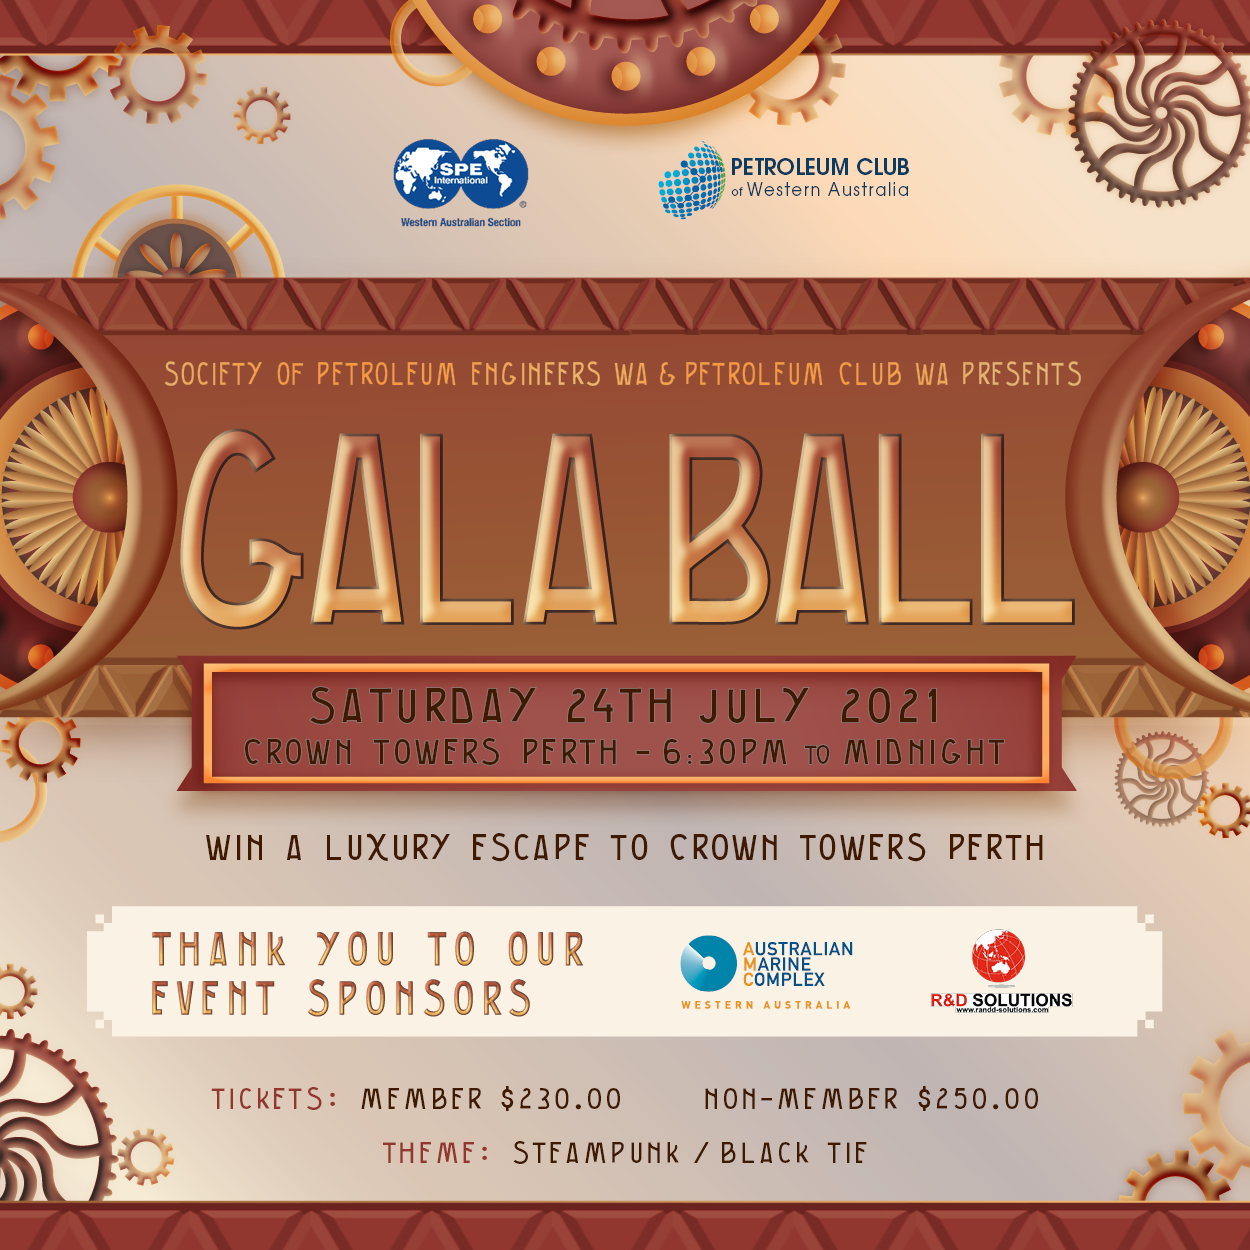 Steampunk SQ Flyer_GalaBall wSPE2-Sponsors